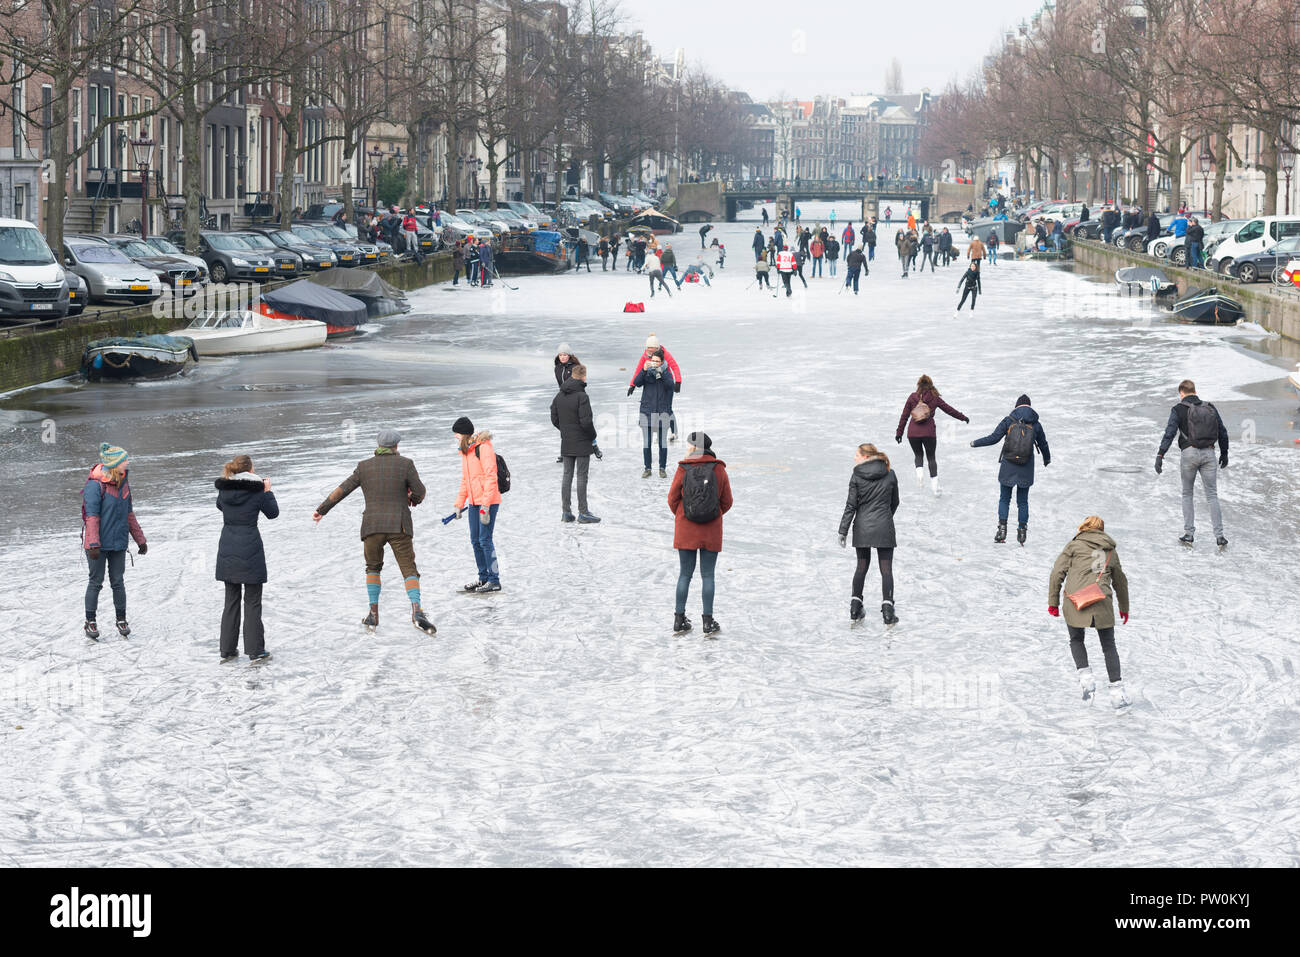 Ice on canal Keizersgracht, Amsterdam and ice skating people. A typical Dutch winter scene. Stock Photo